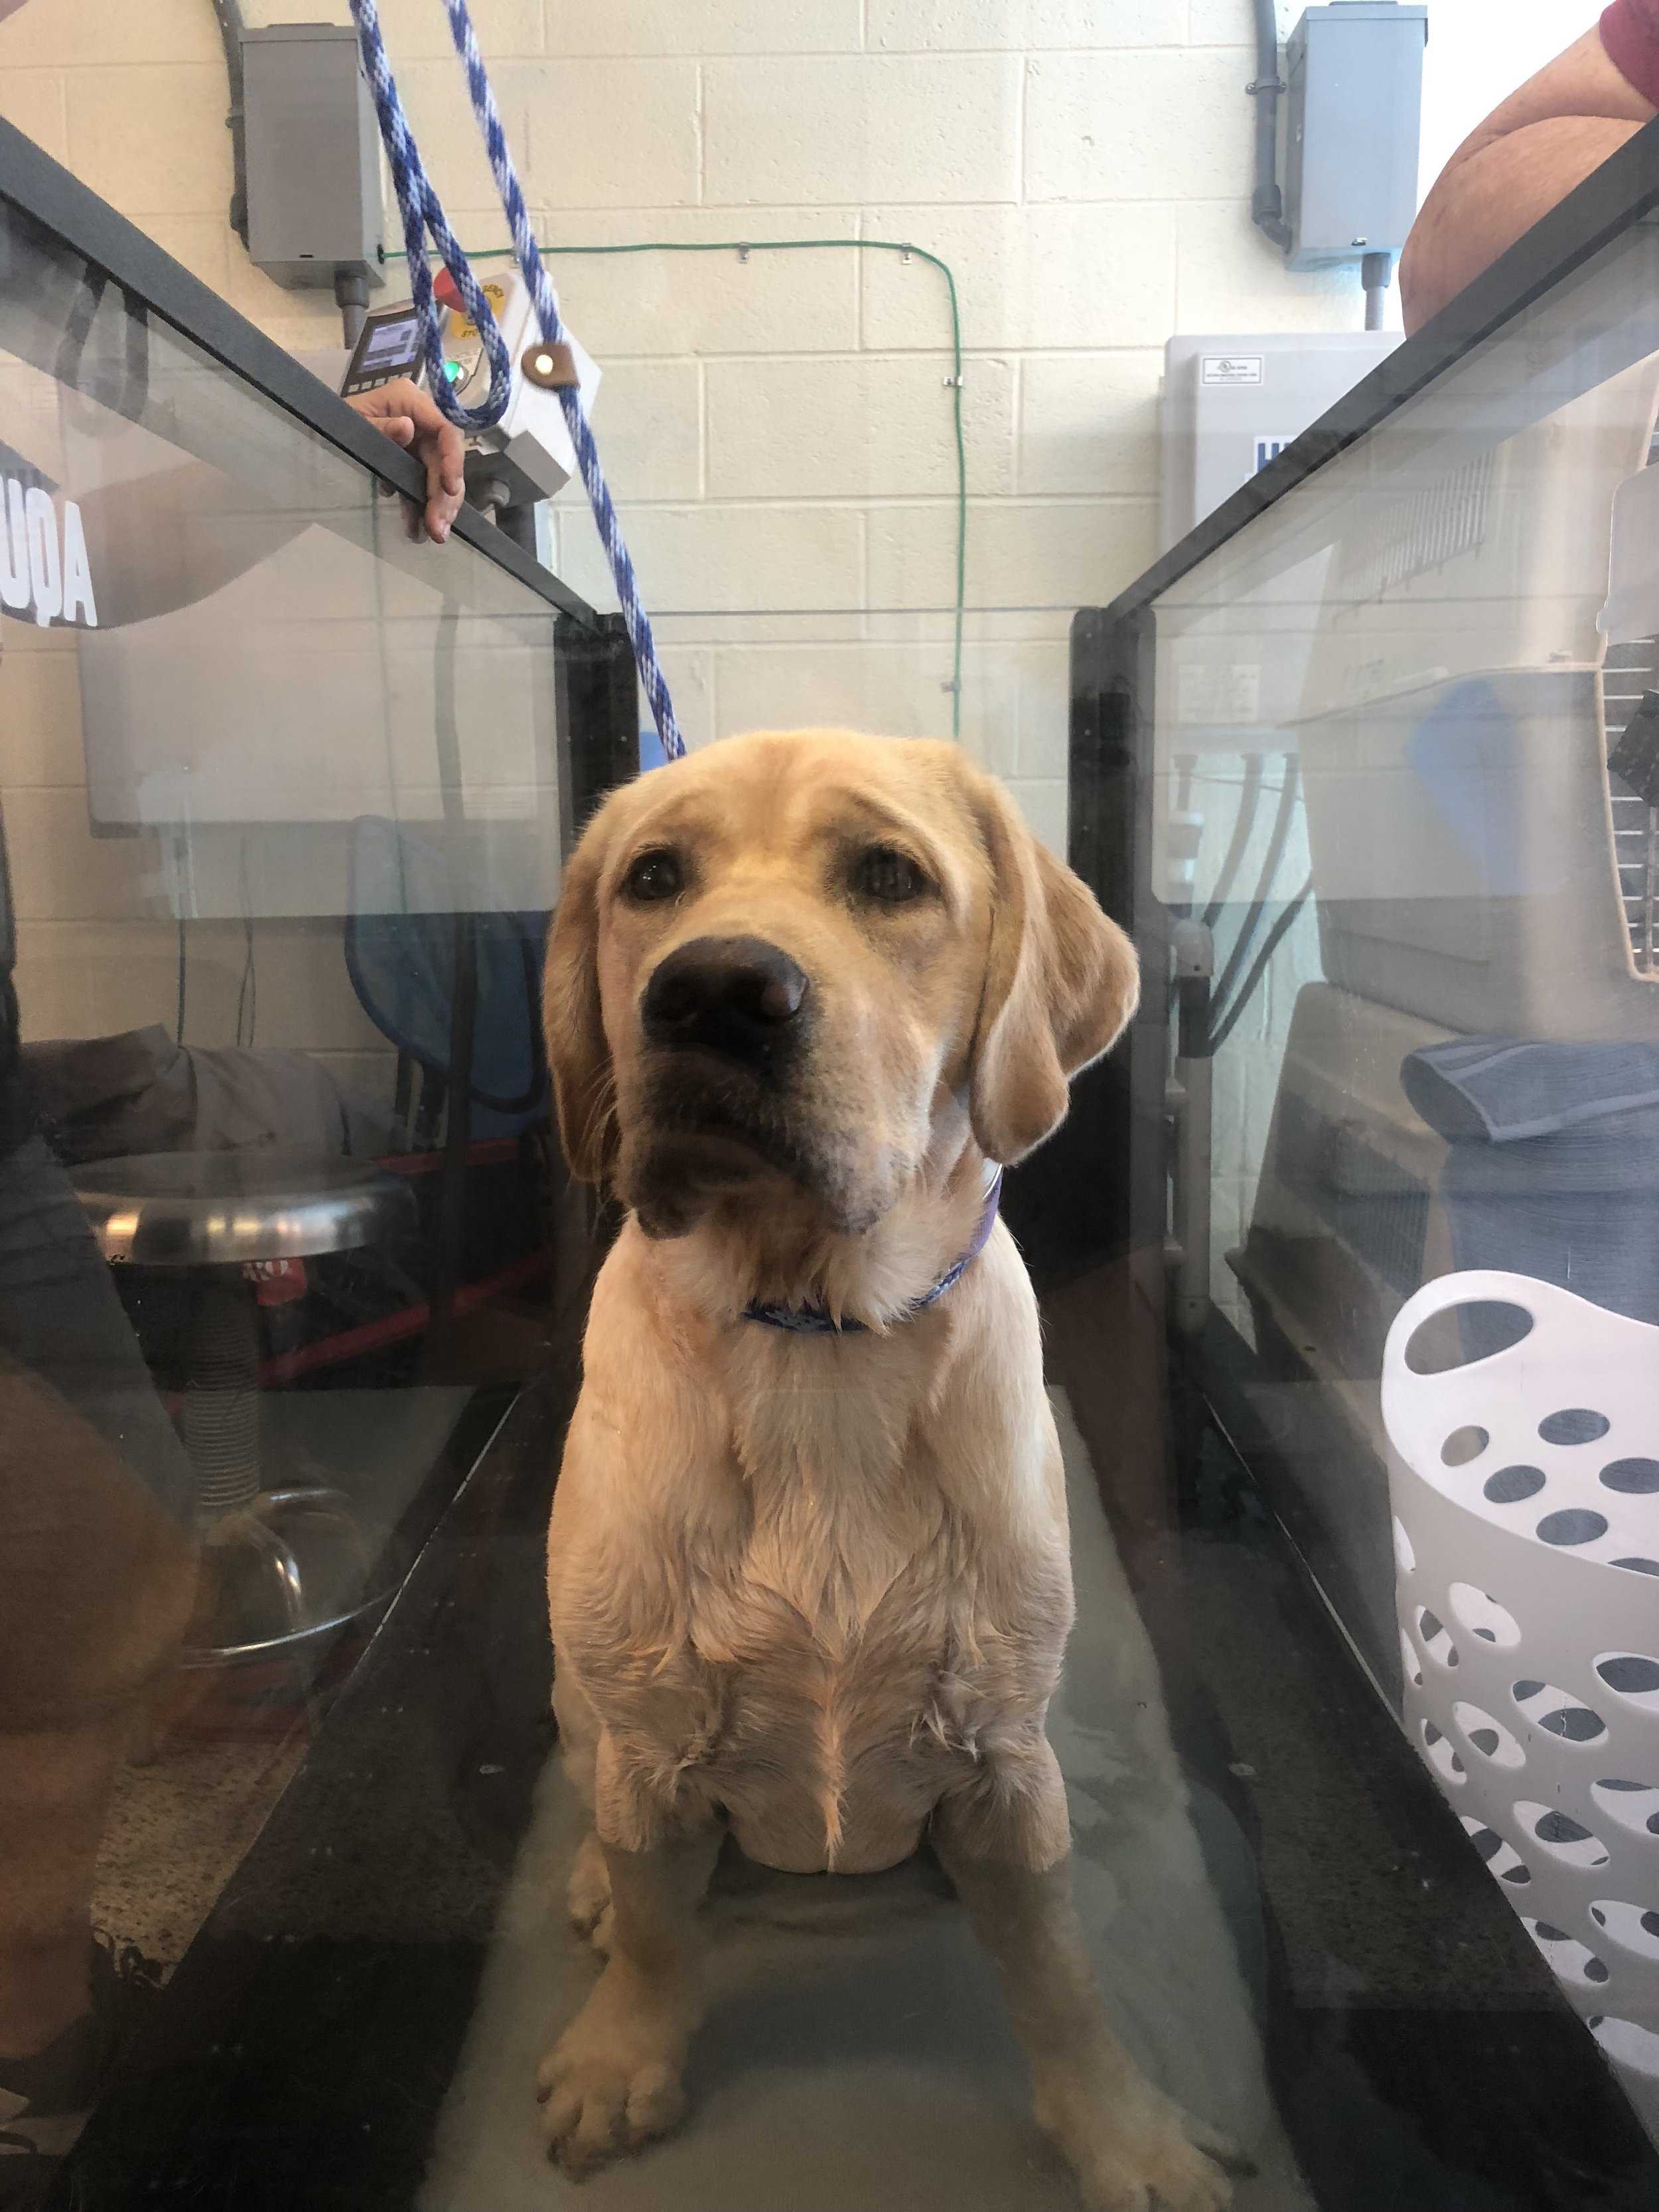 Isn't he cute?? - Puppies Behind Bars is an incredible program that I am very passionate about.Check out their website:  https://puppiesbehindbars.com